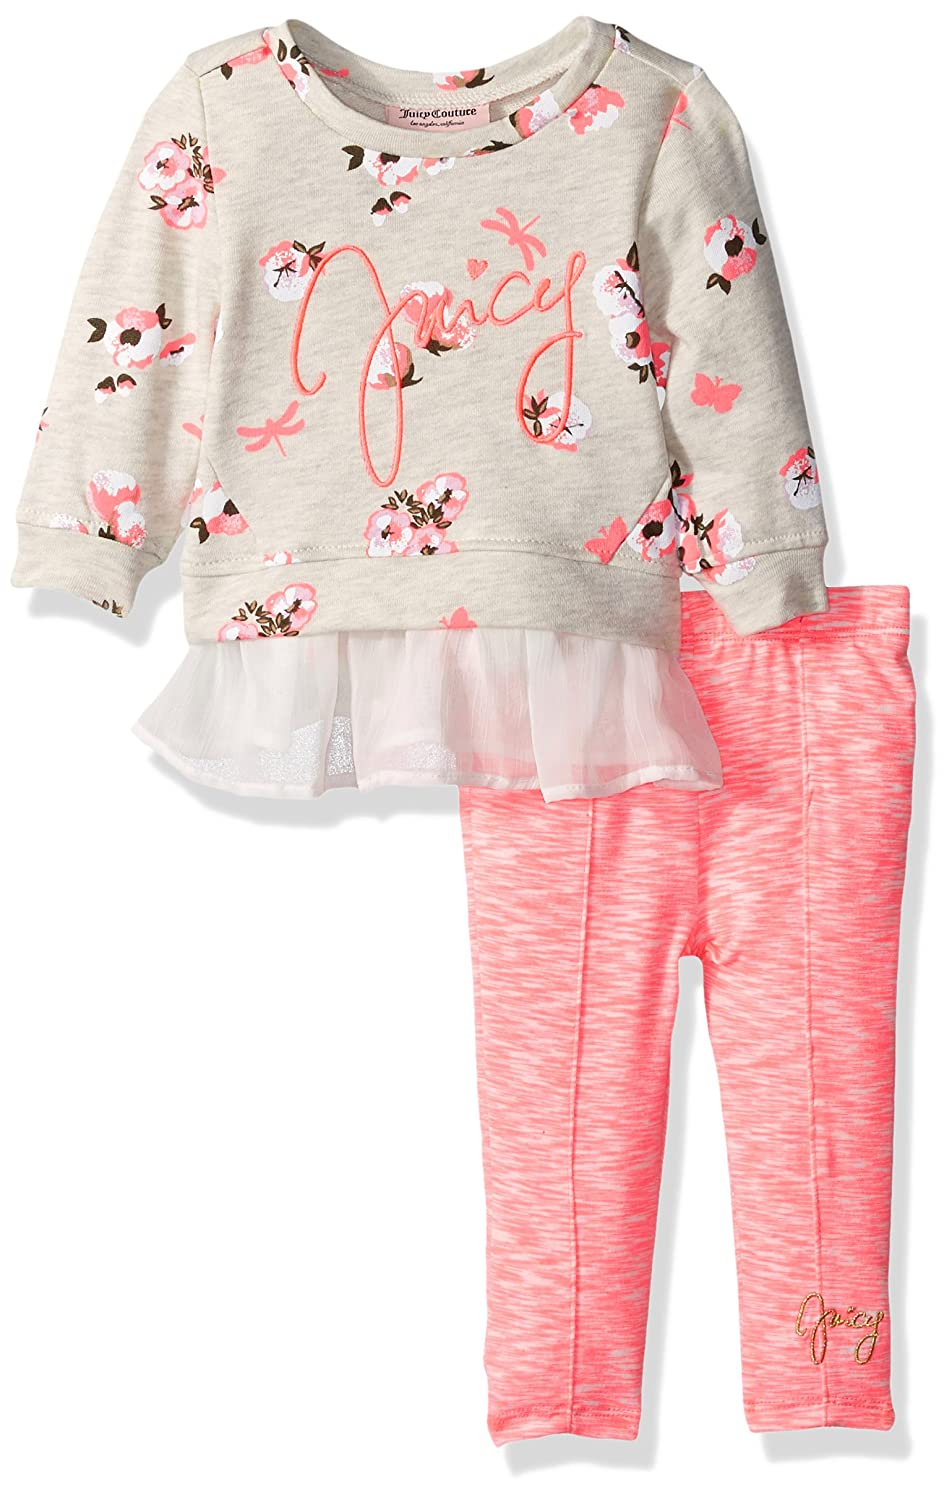 f8ce9e4270 Floral printed top with Juict logo across chest. Pink elasticized waist  leggings with Juicy logo at the bottom. Long sleeves. On trend Juicy Couture  outfit ...